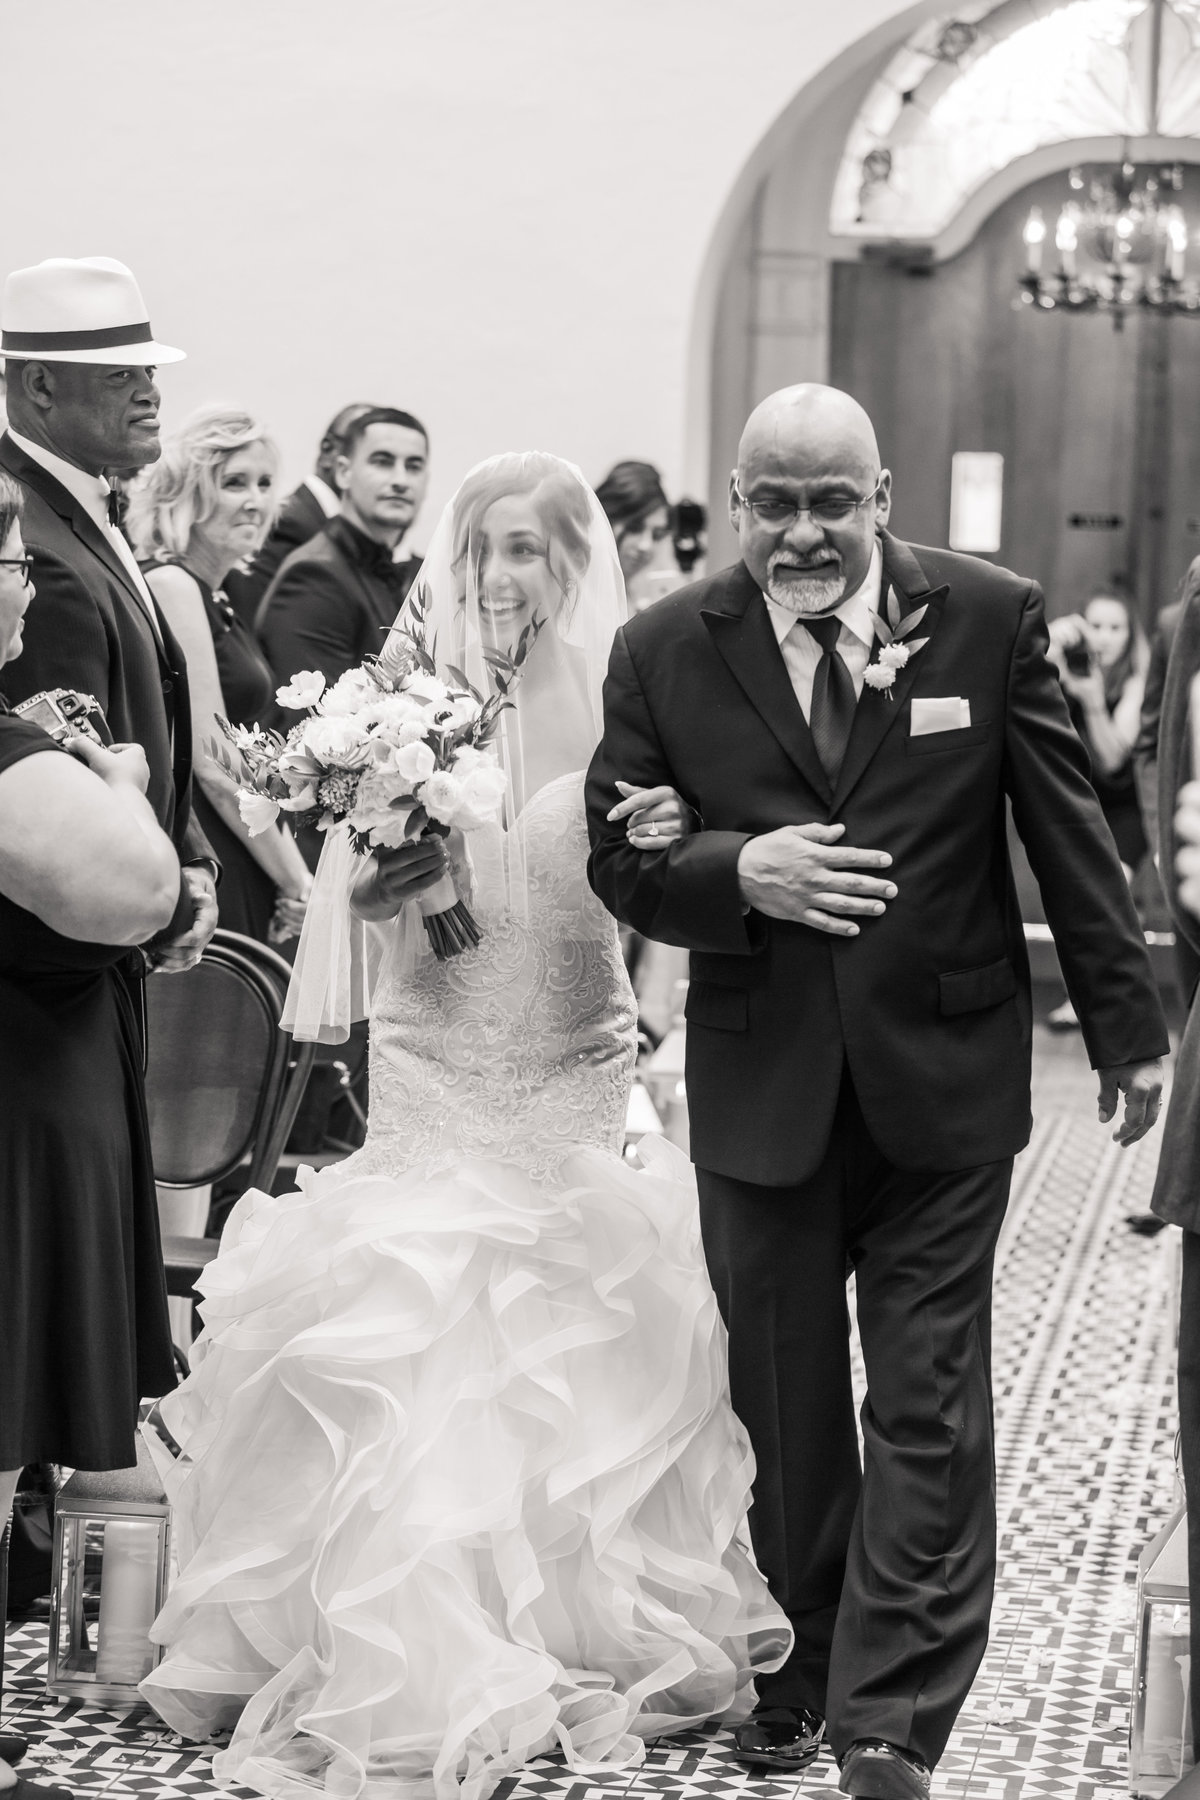 Ebell_Los_Angeles_Malcolm_Smith_NFL_Navy_Brass_Wedding_Valorie_Darling_Photography - 65 of 122